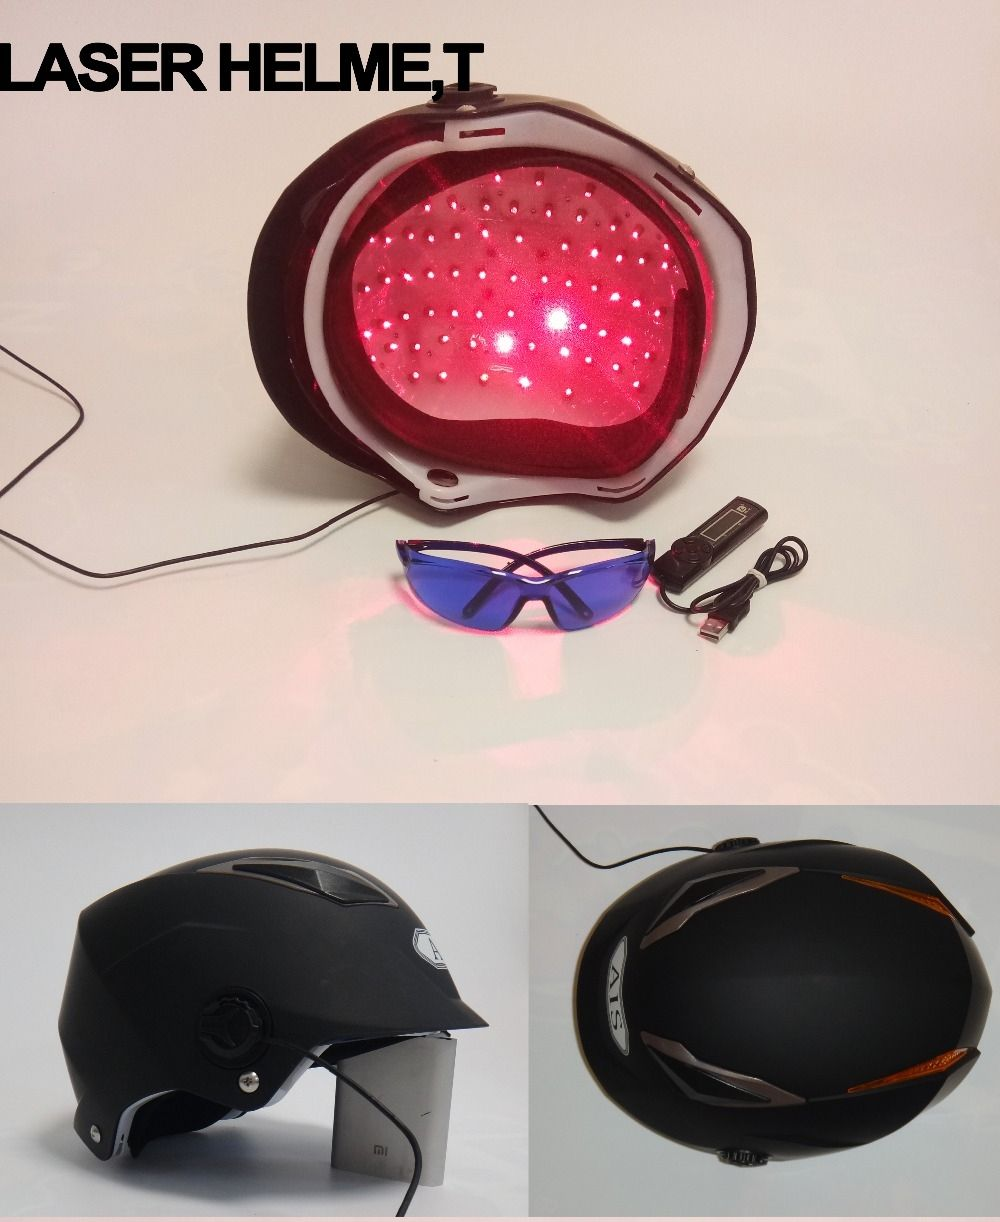 Lllt Therapy For Hair Loss Treatment 650nm 68 Diode Laser Helmet Regrowth